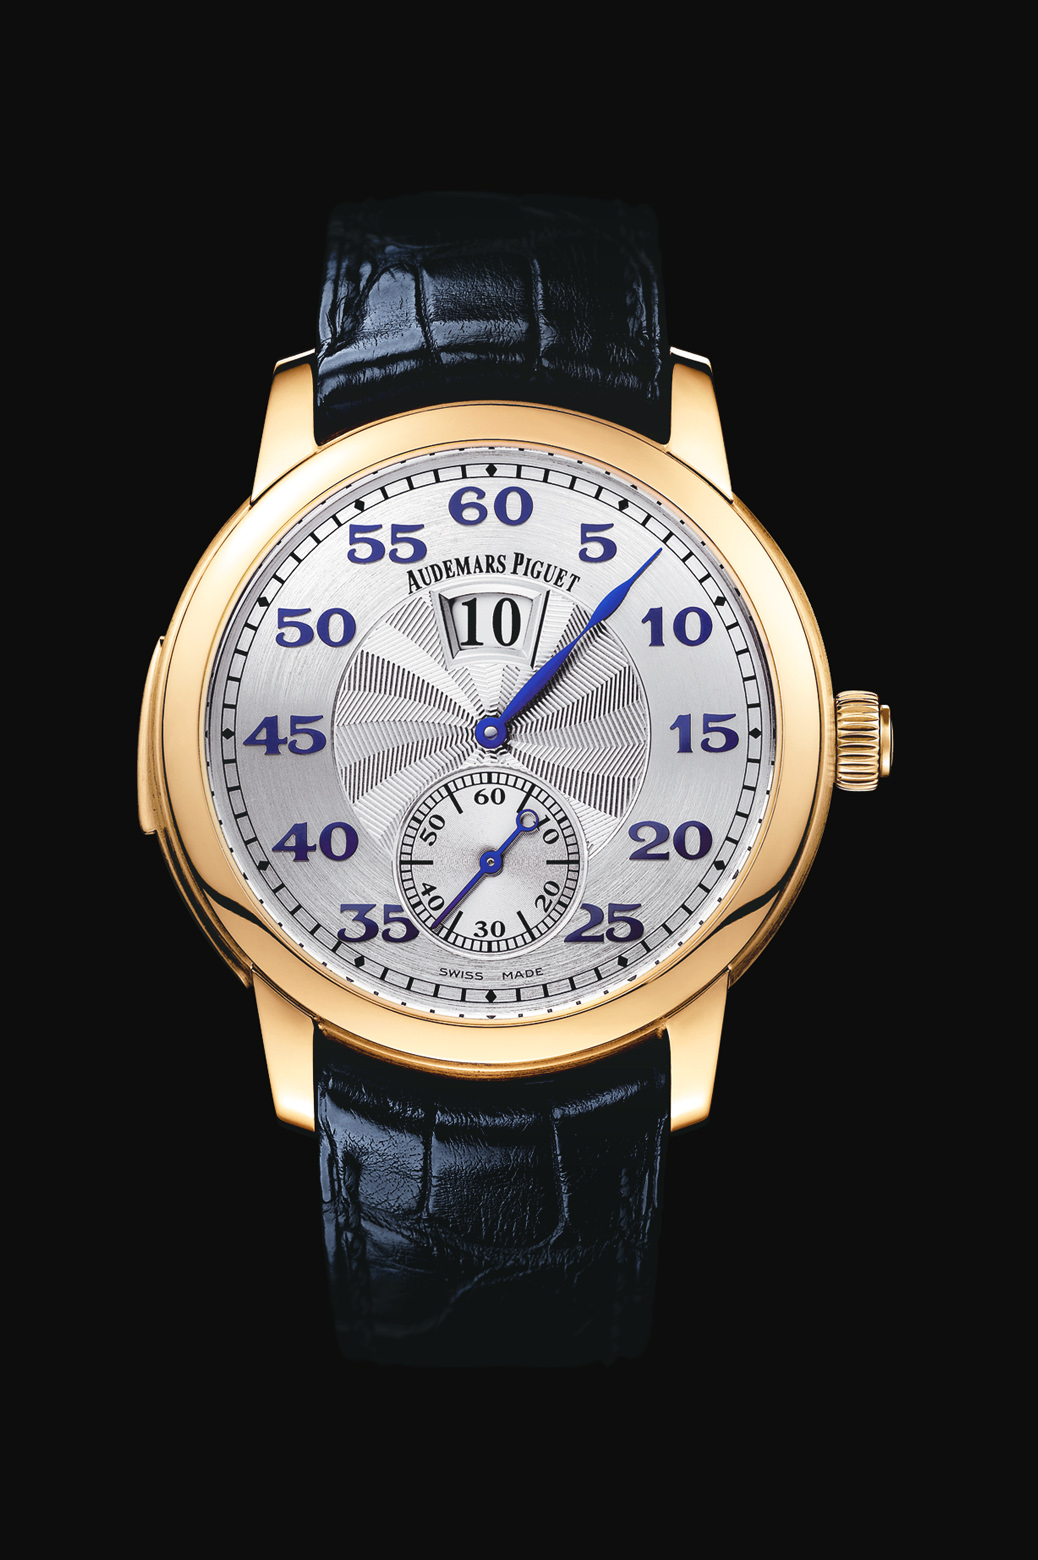 часы Audemars Piguet MINUTE REPEATER WITH JUMPING HOUR AND SMALL SECONDS